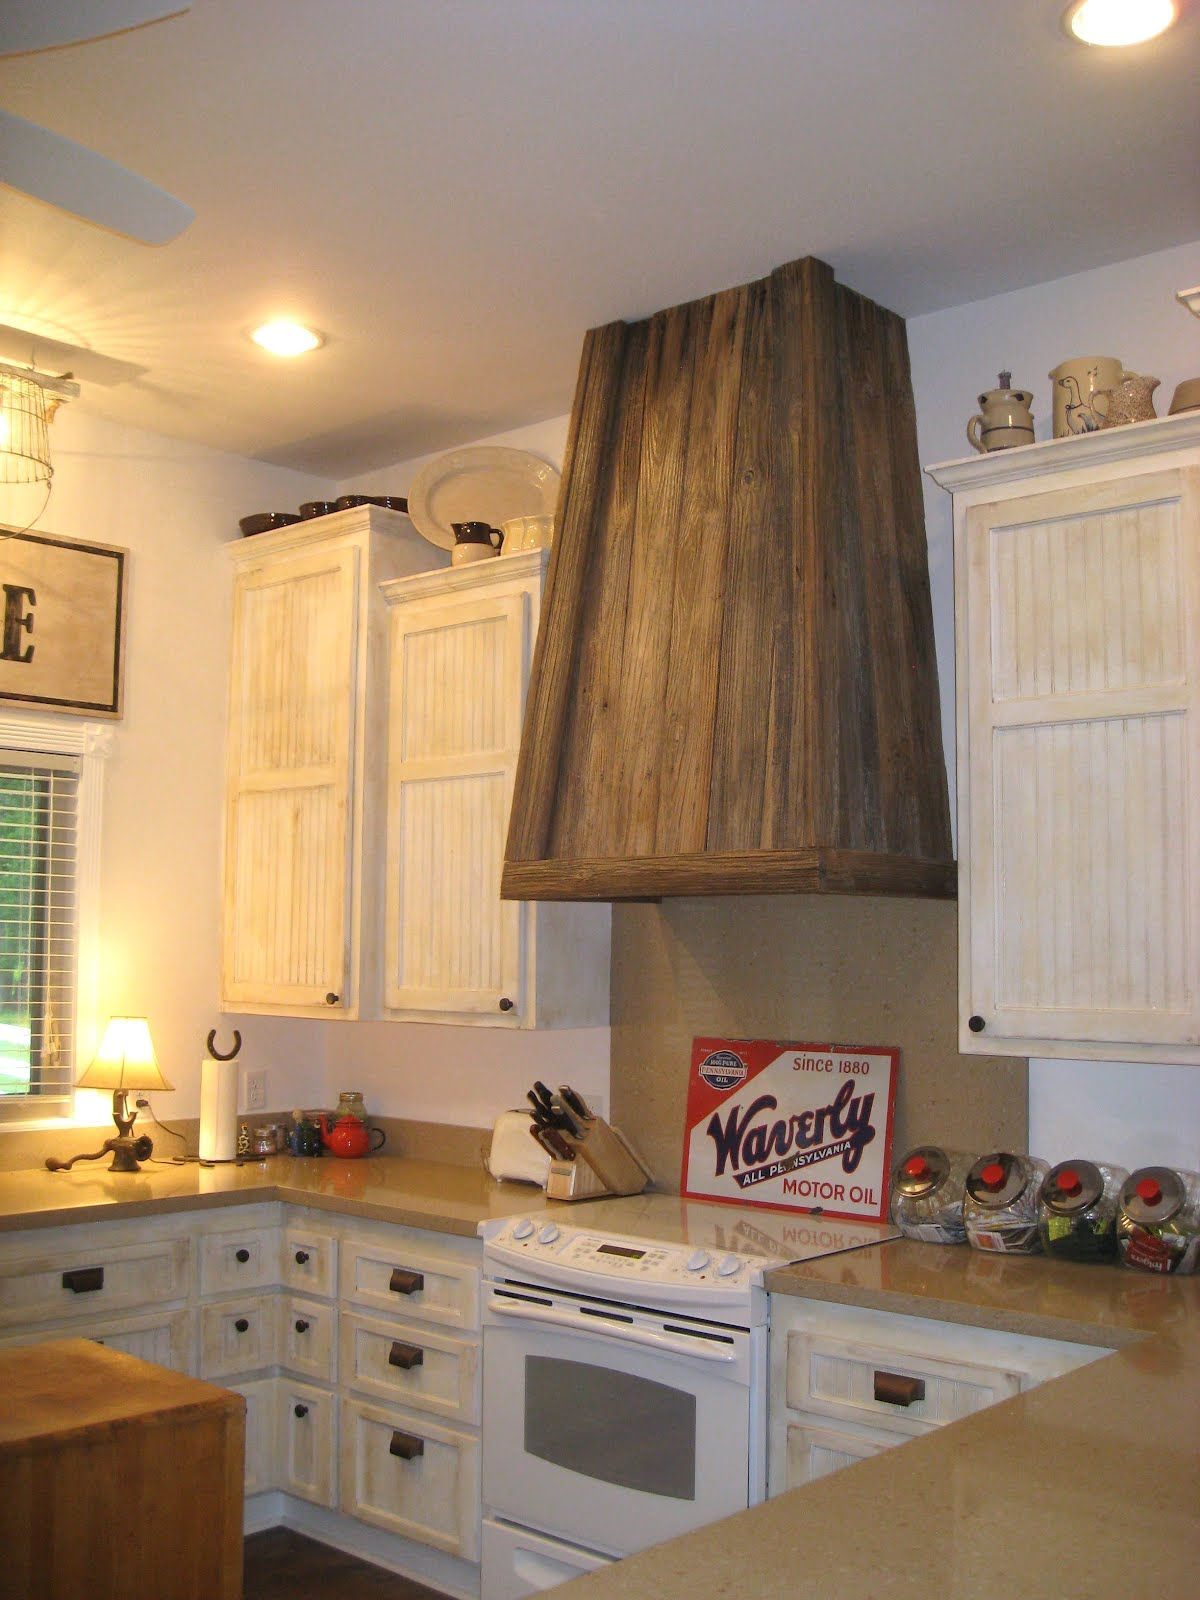 Good How To Make Old Wood Cabinets Look New .